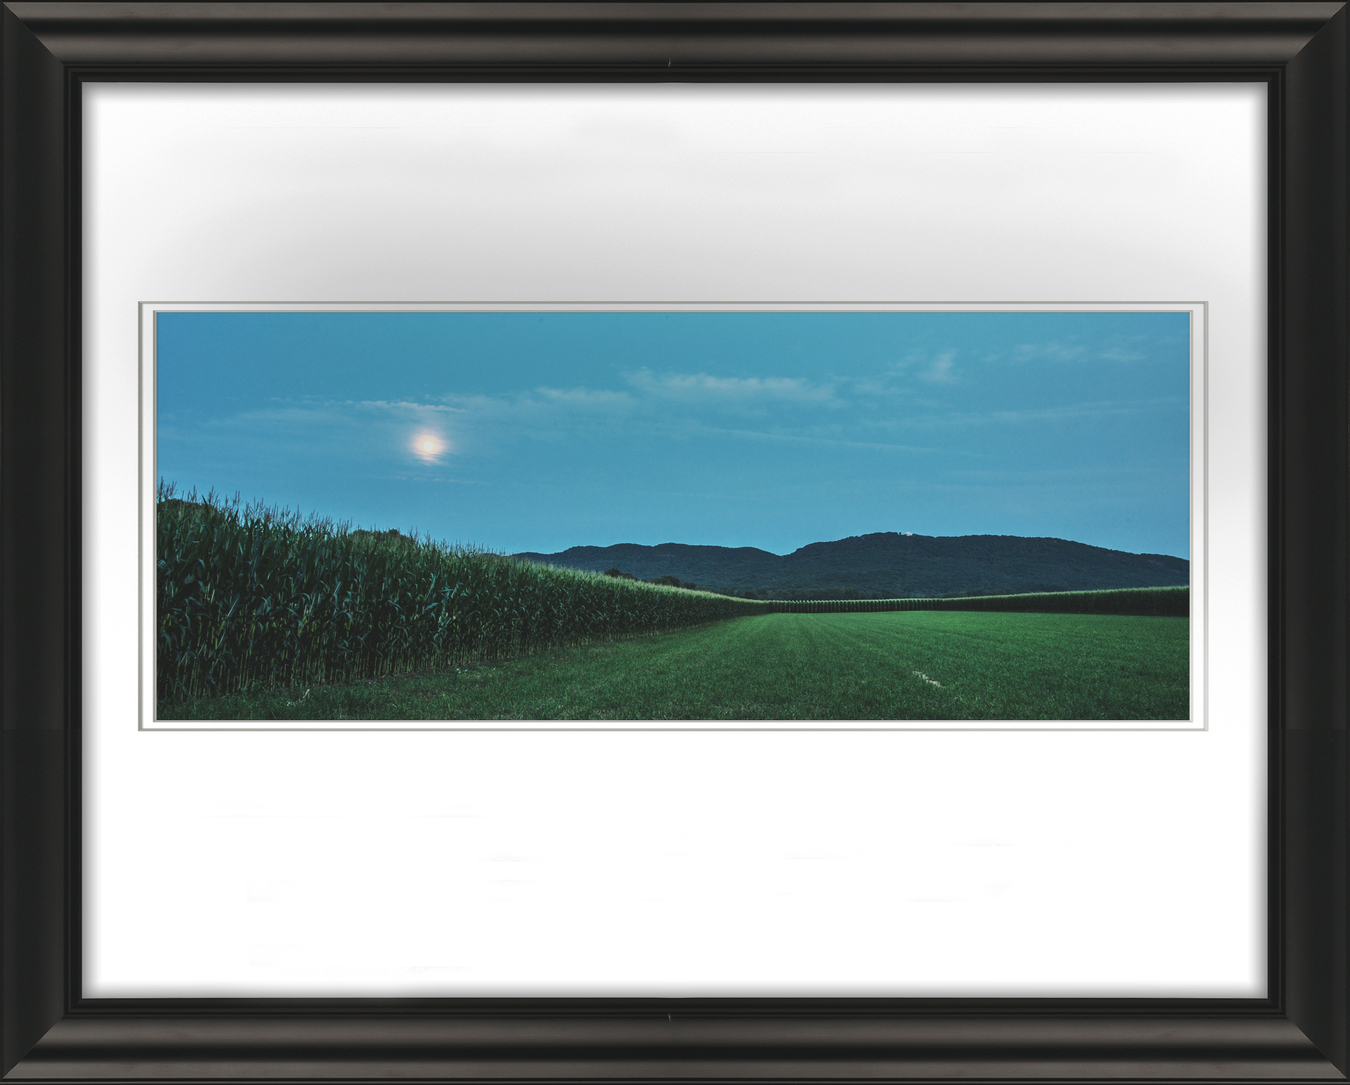 Frame 6564 Corn Open Space and Mood Livebooks.jpg